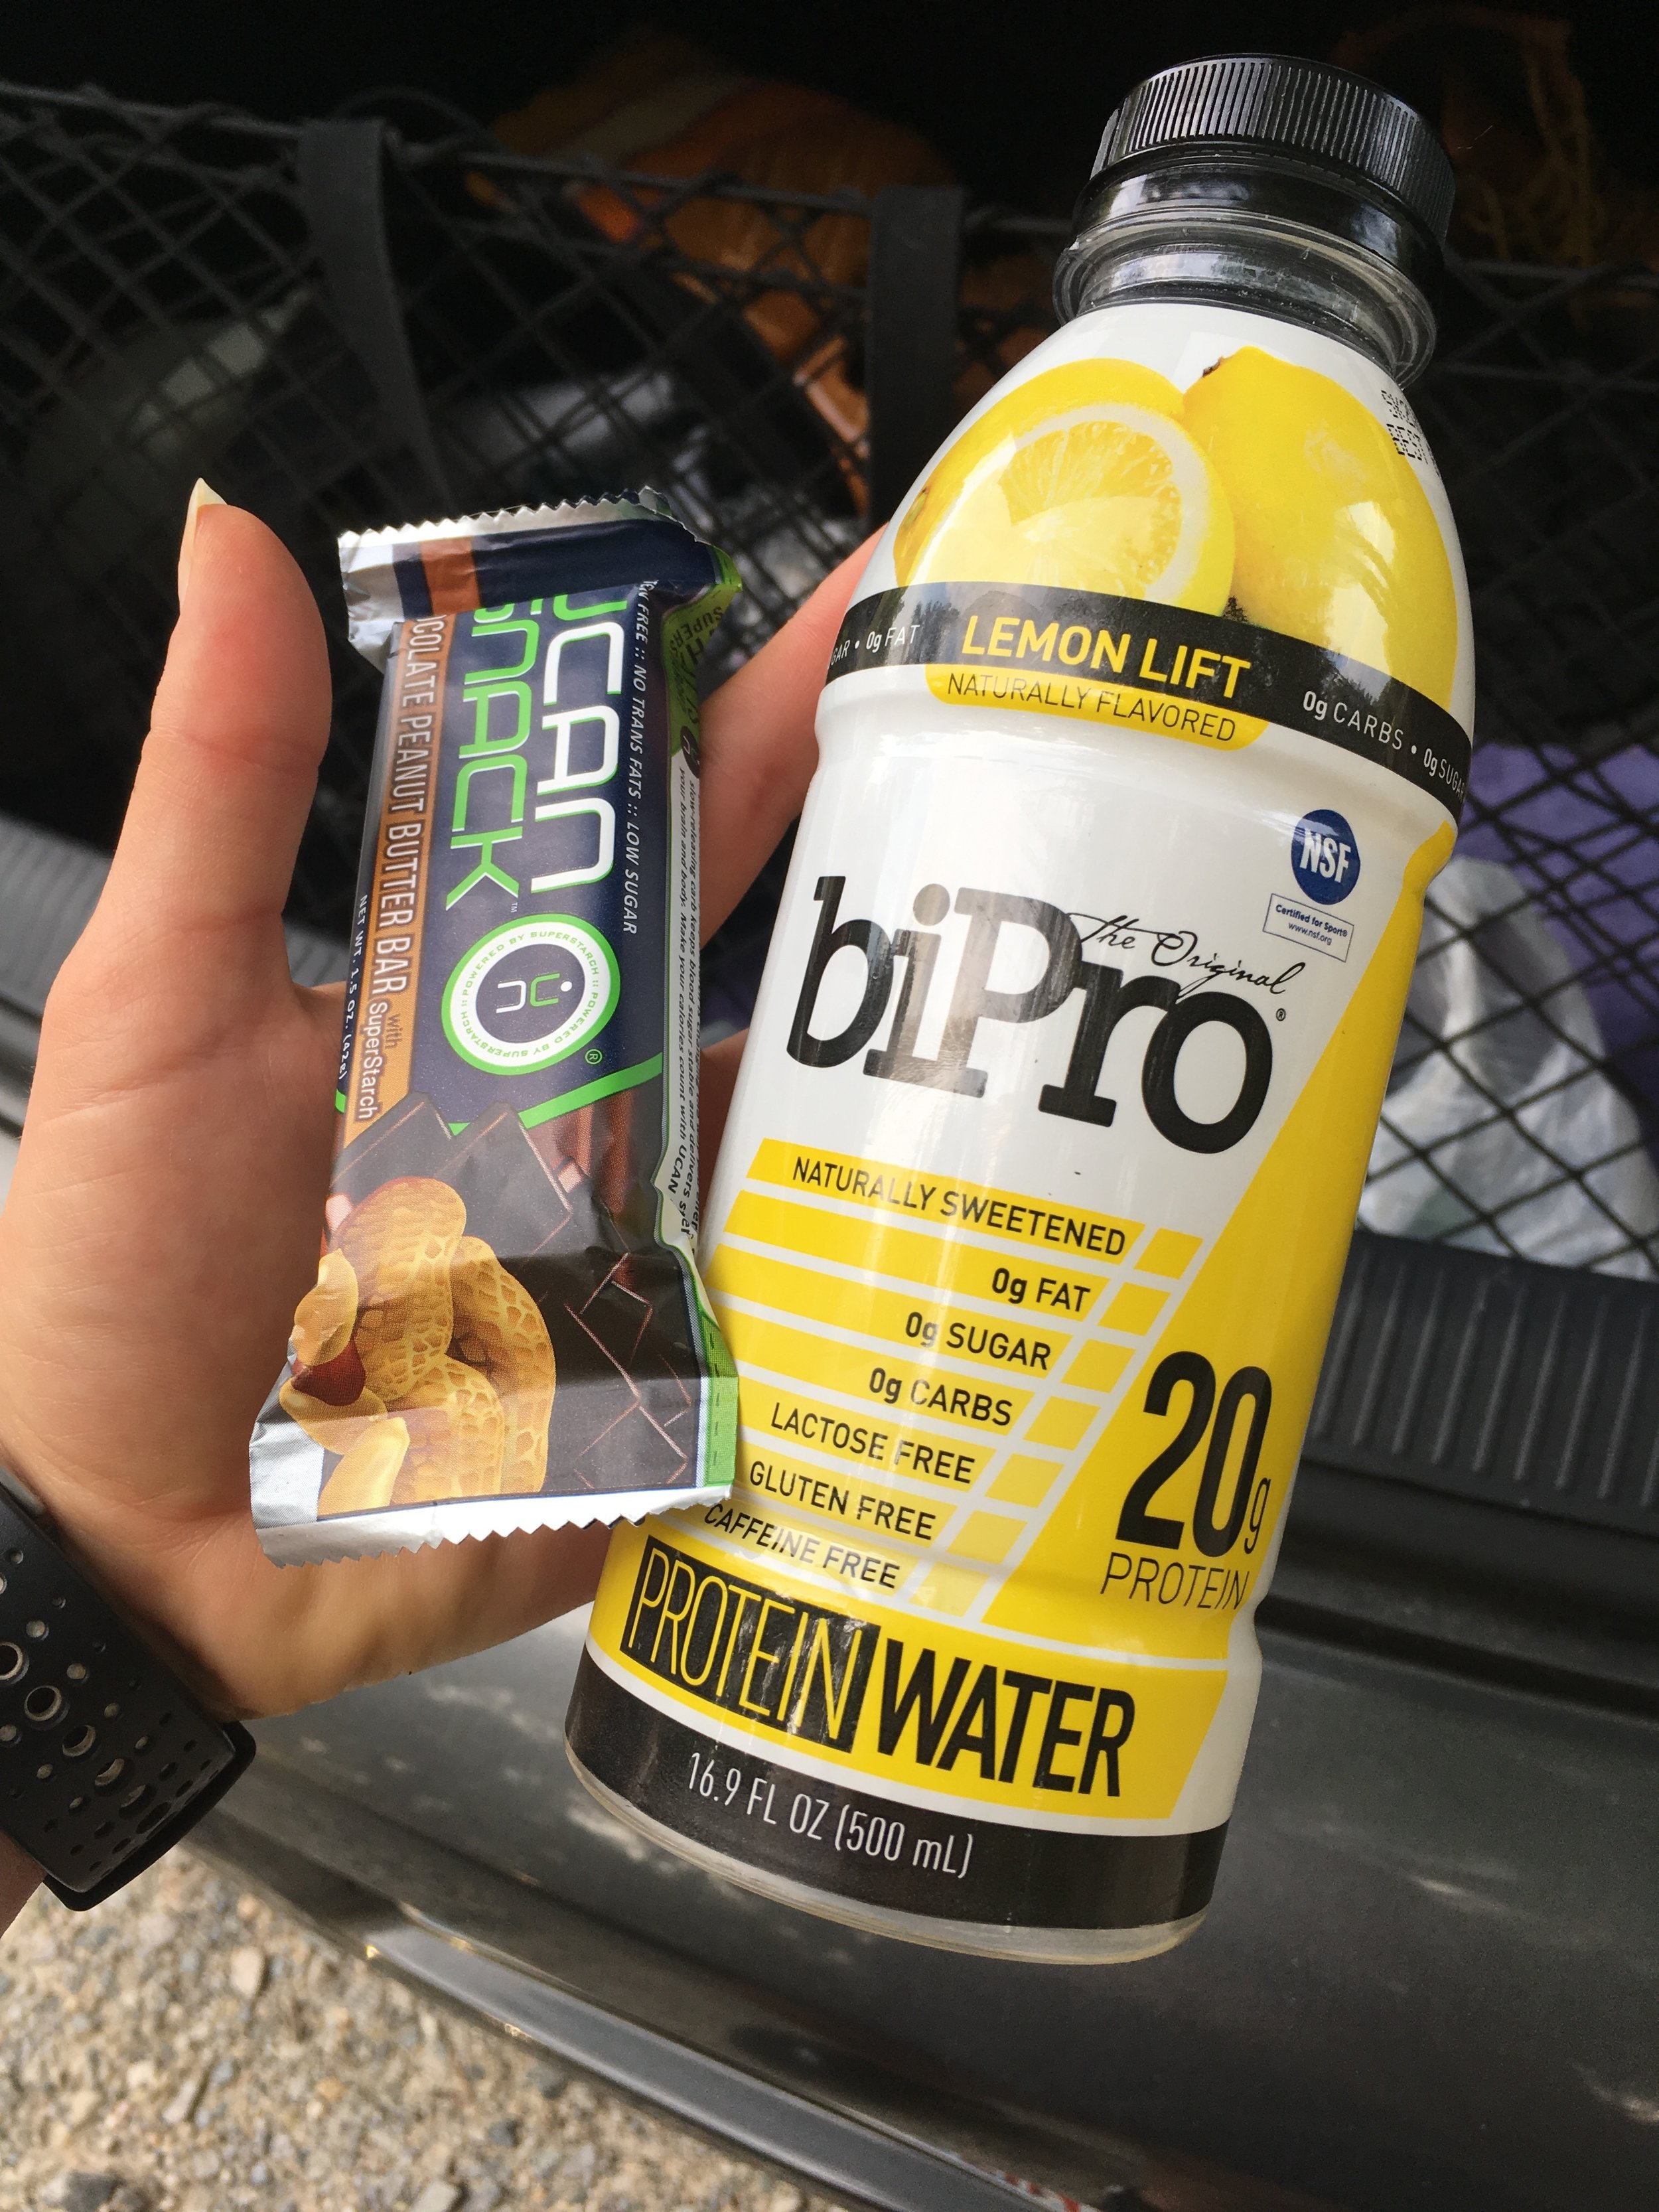 UCAN Snack Bar and BiPro Protein Water